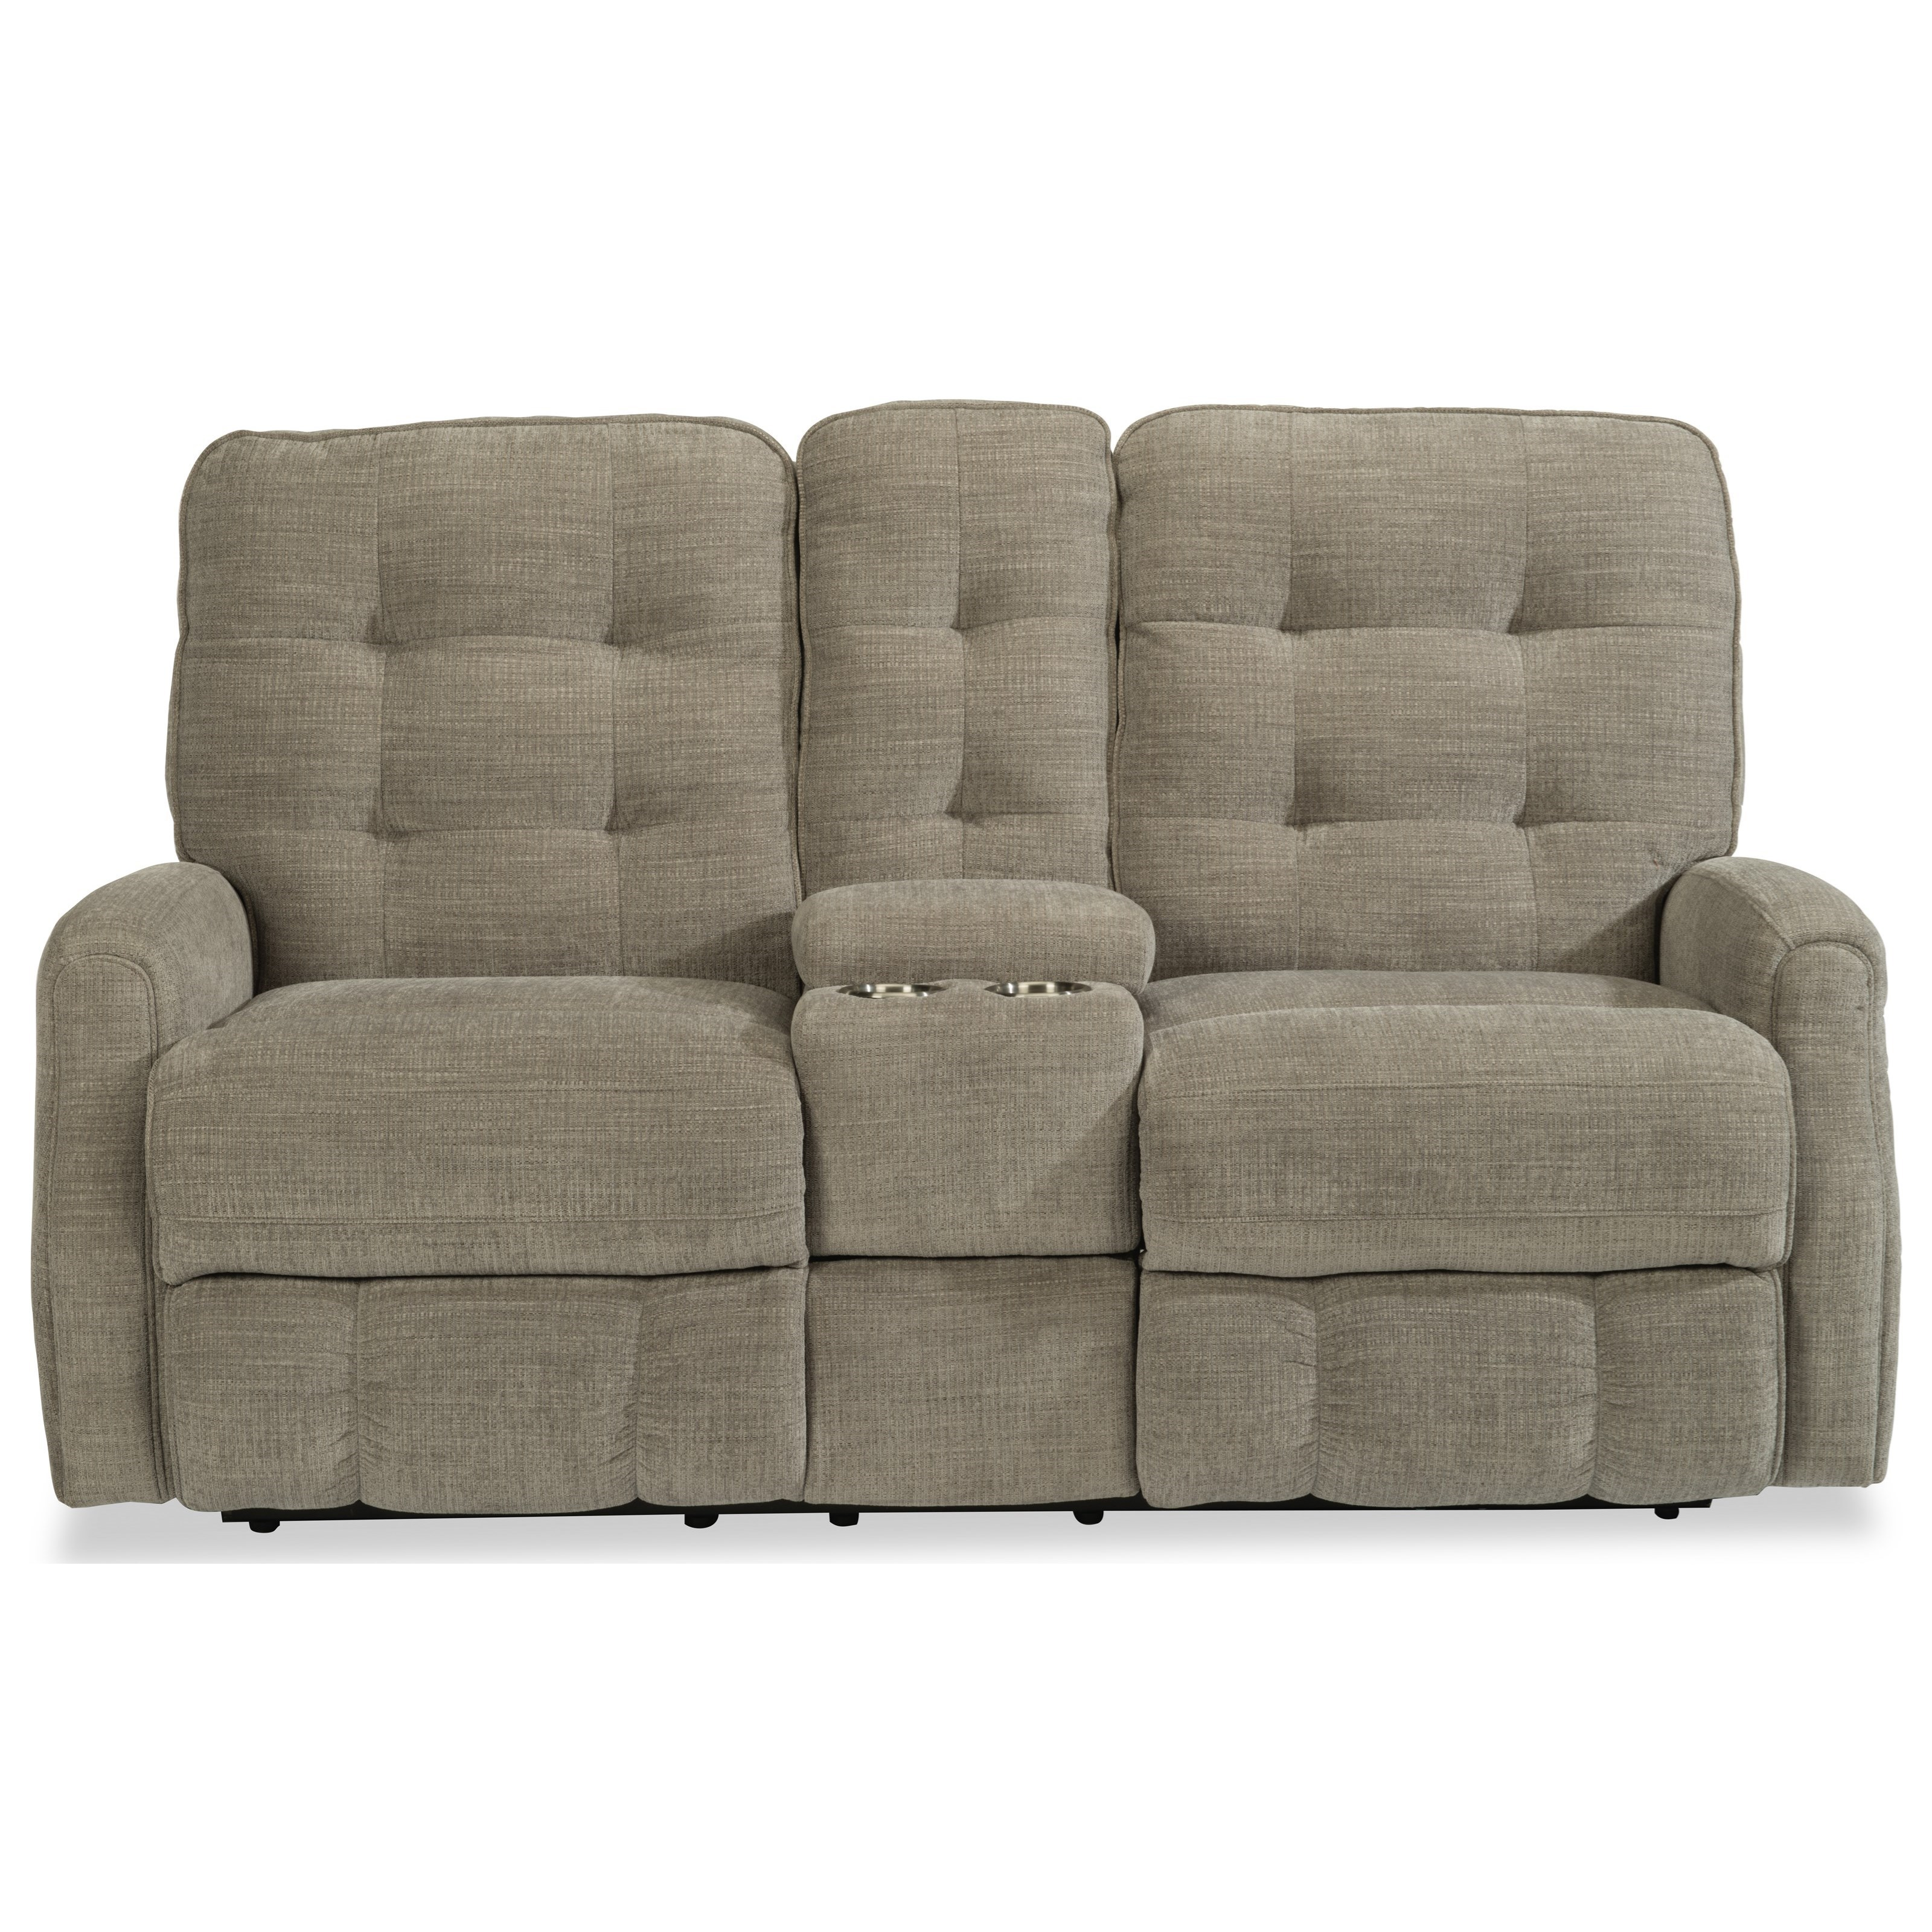 Devon Reclining Loveseat with Console by Flexsteel at Steger's Furniture